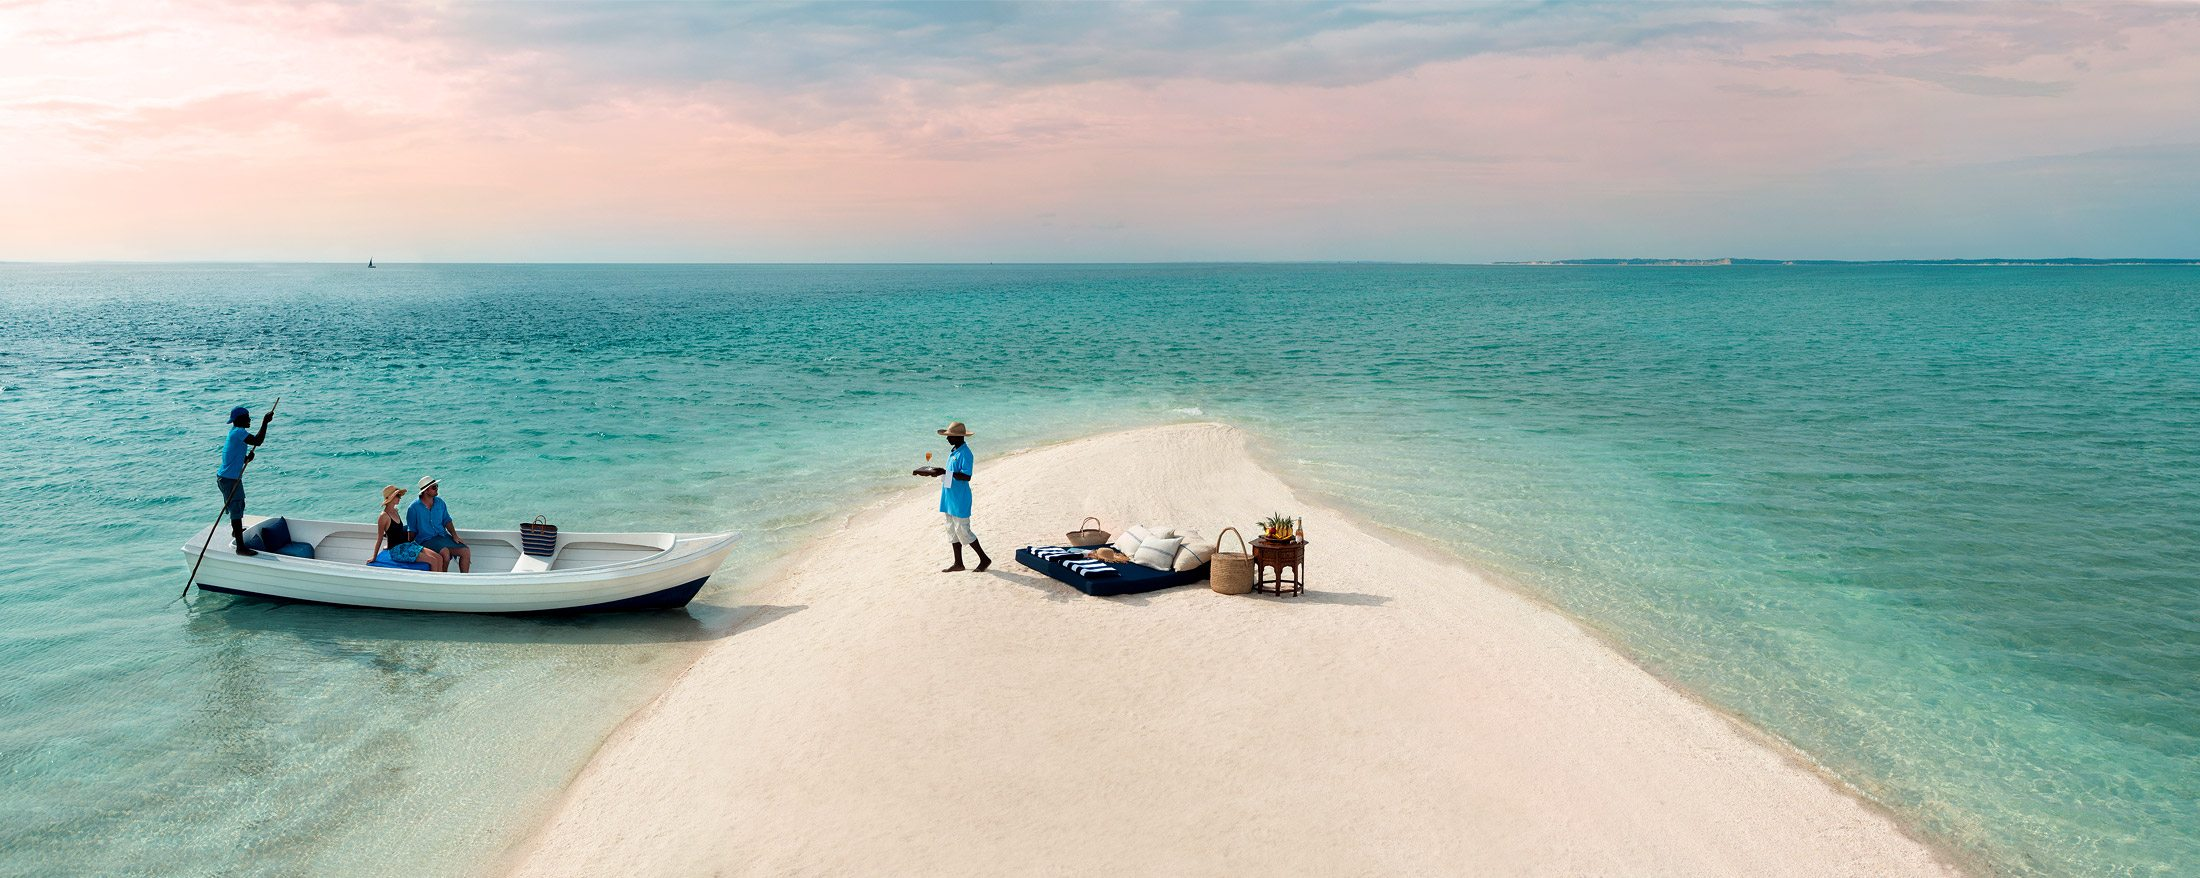 You'll arrive by boat for your private sandbar picnic in Mozambique.